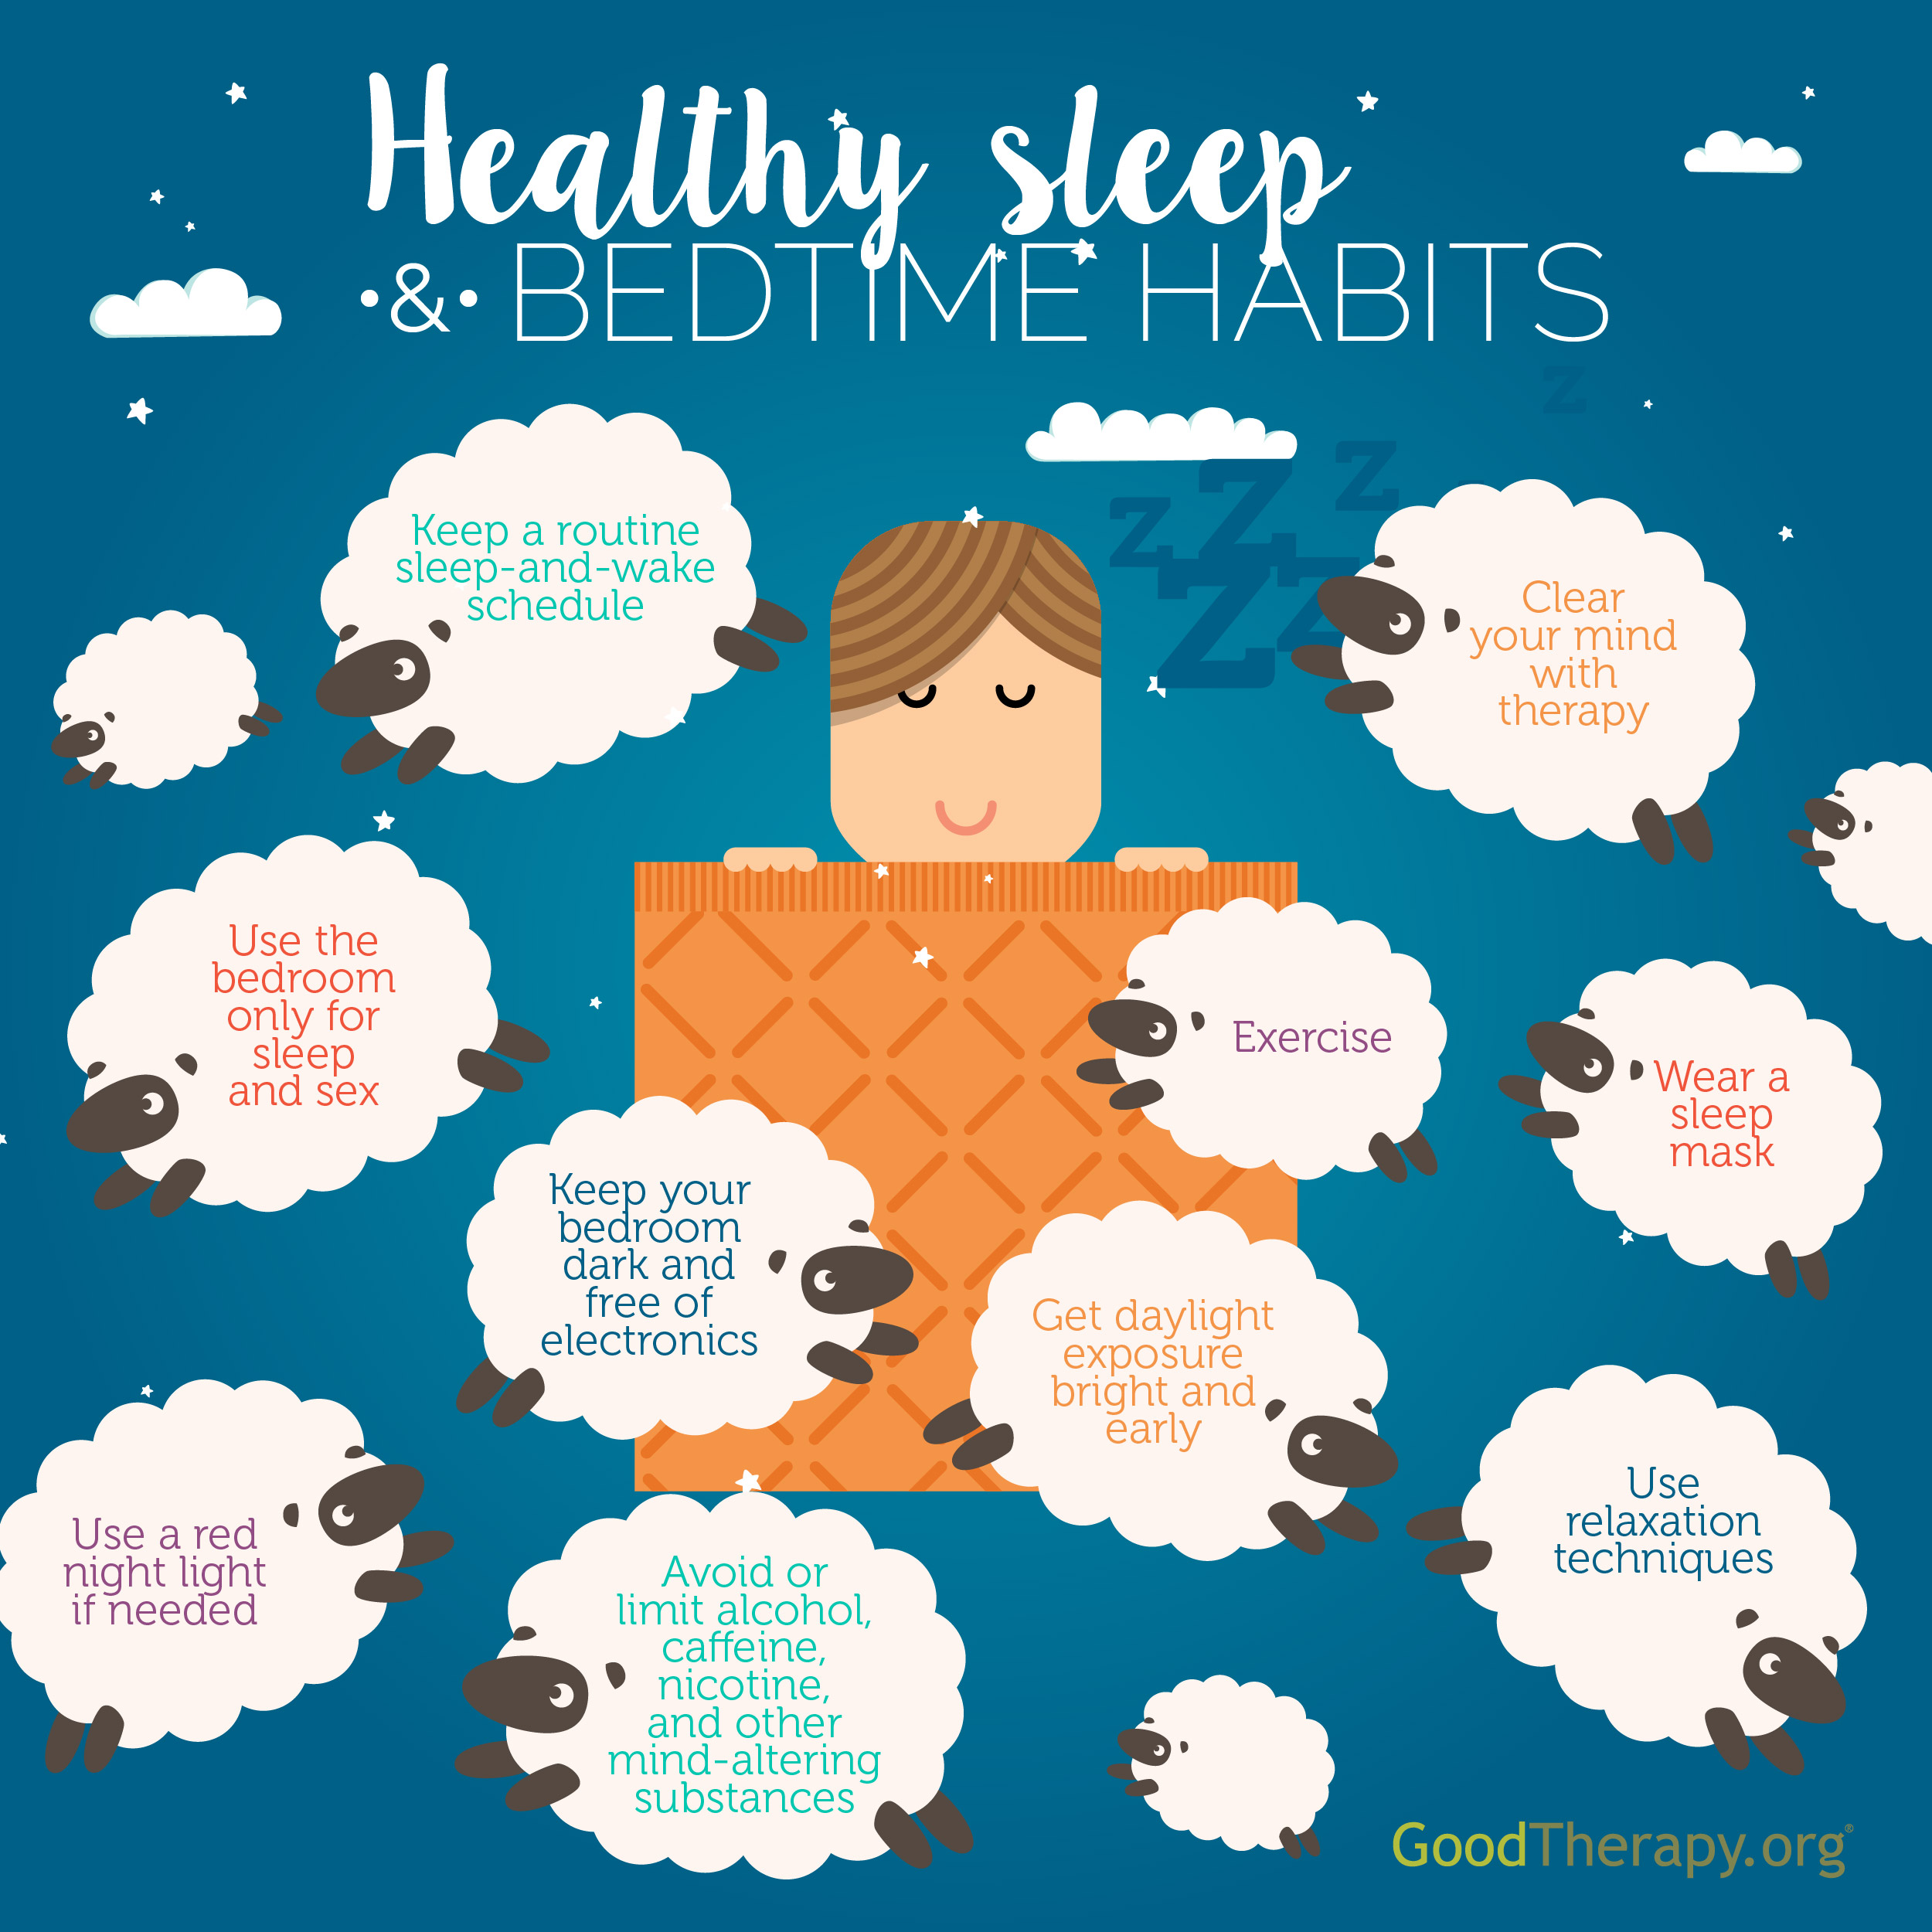 Sleep Hygiene Infographic by GoodTherapy.org